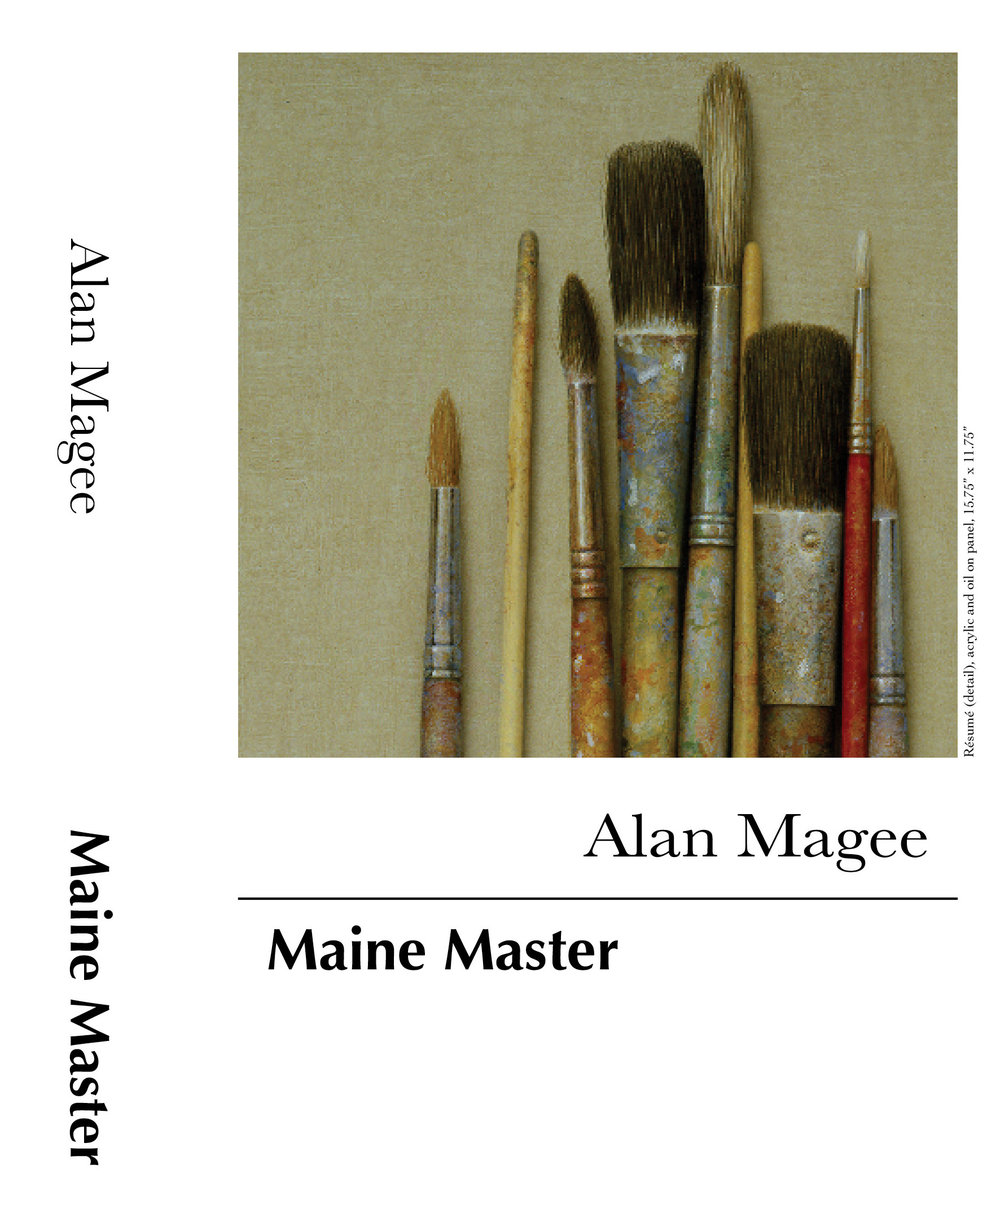 Magee-DVD cover.jpg